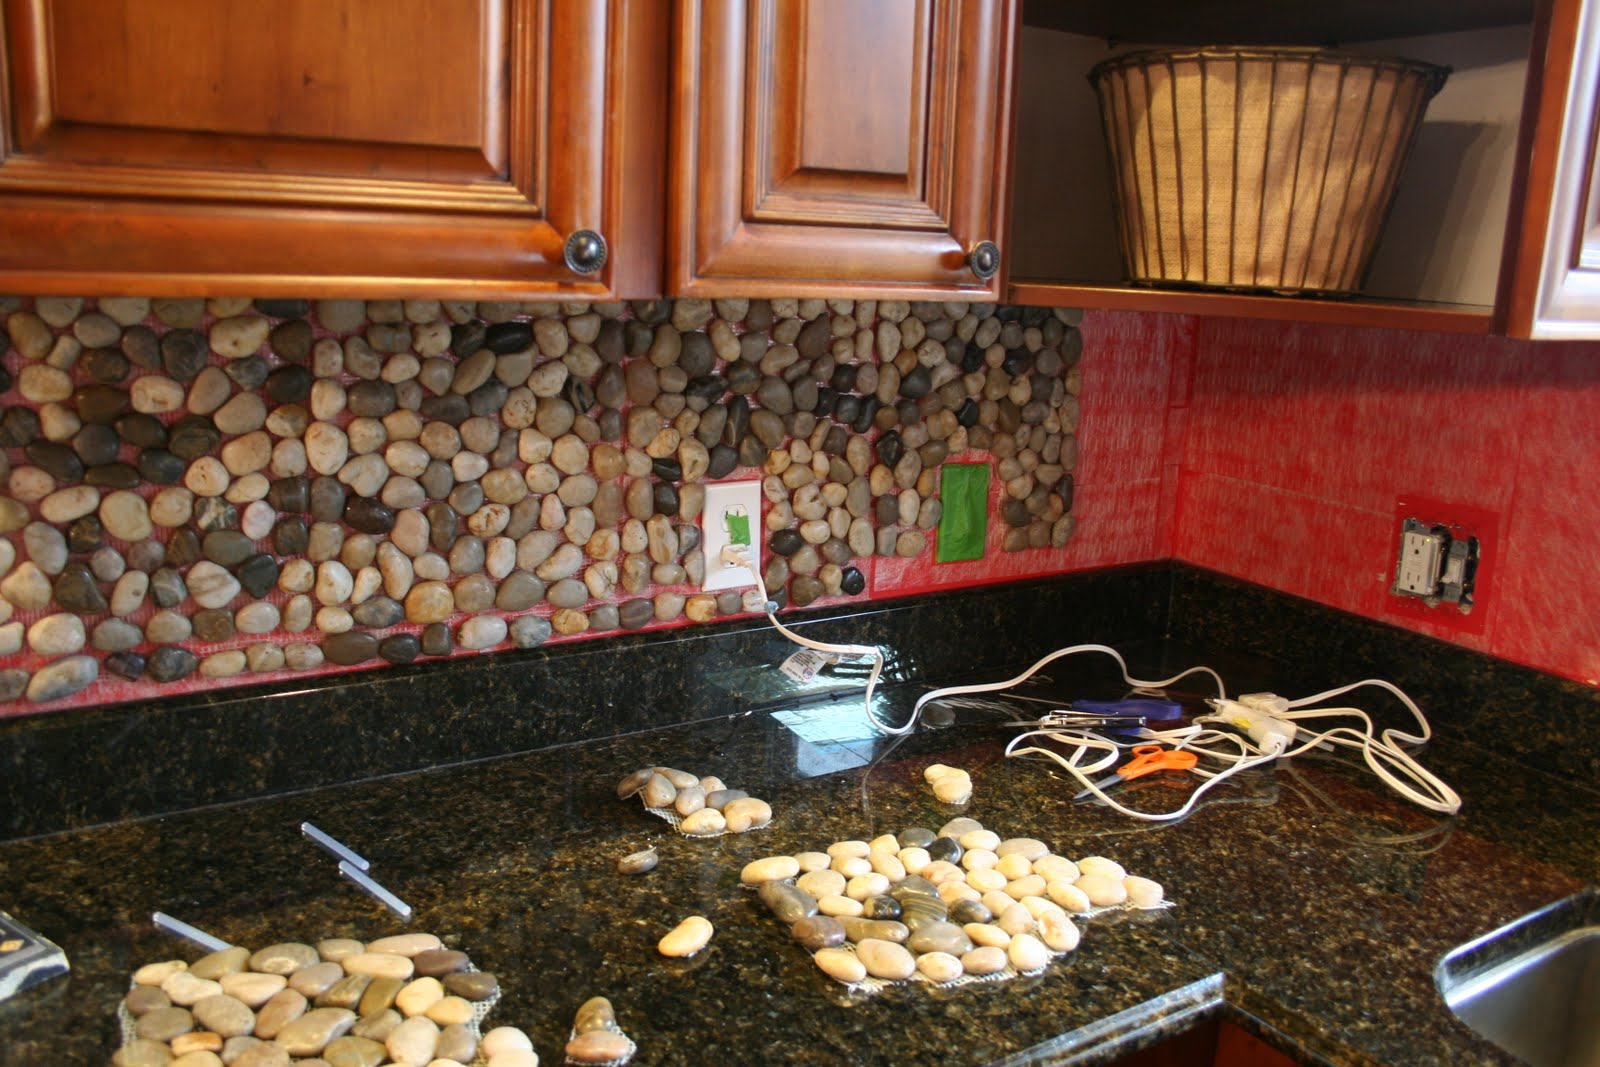 Garden stone kitchen backsplash tutorial how to backsplash home stories a to z - Kitchen backsplash tile ...